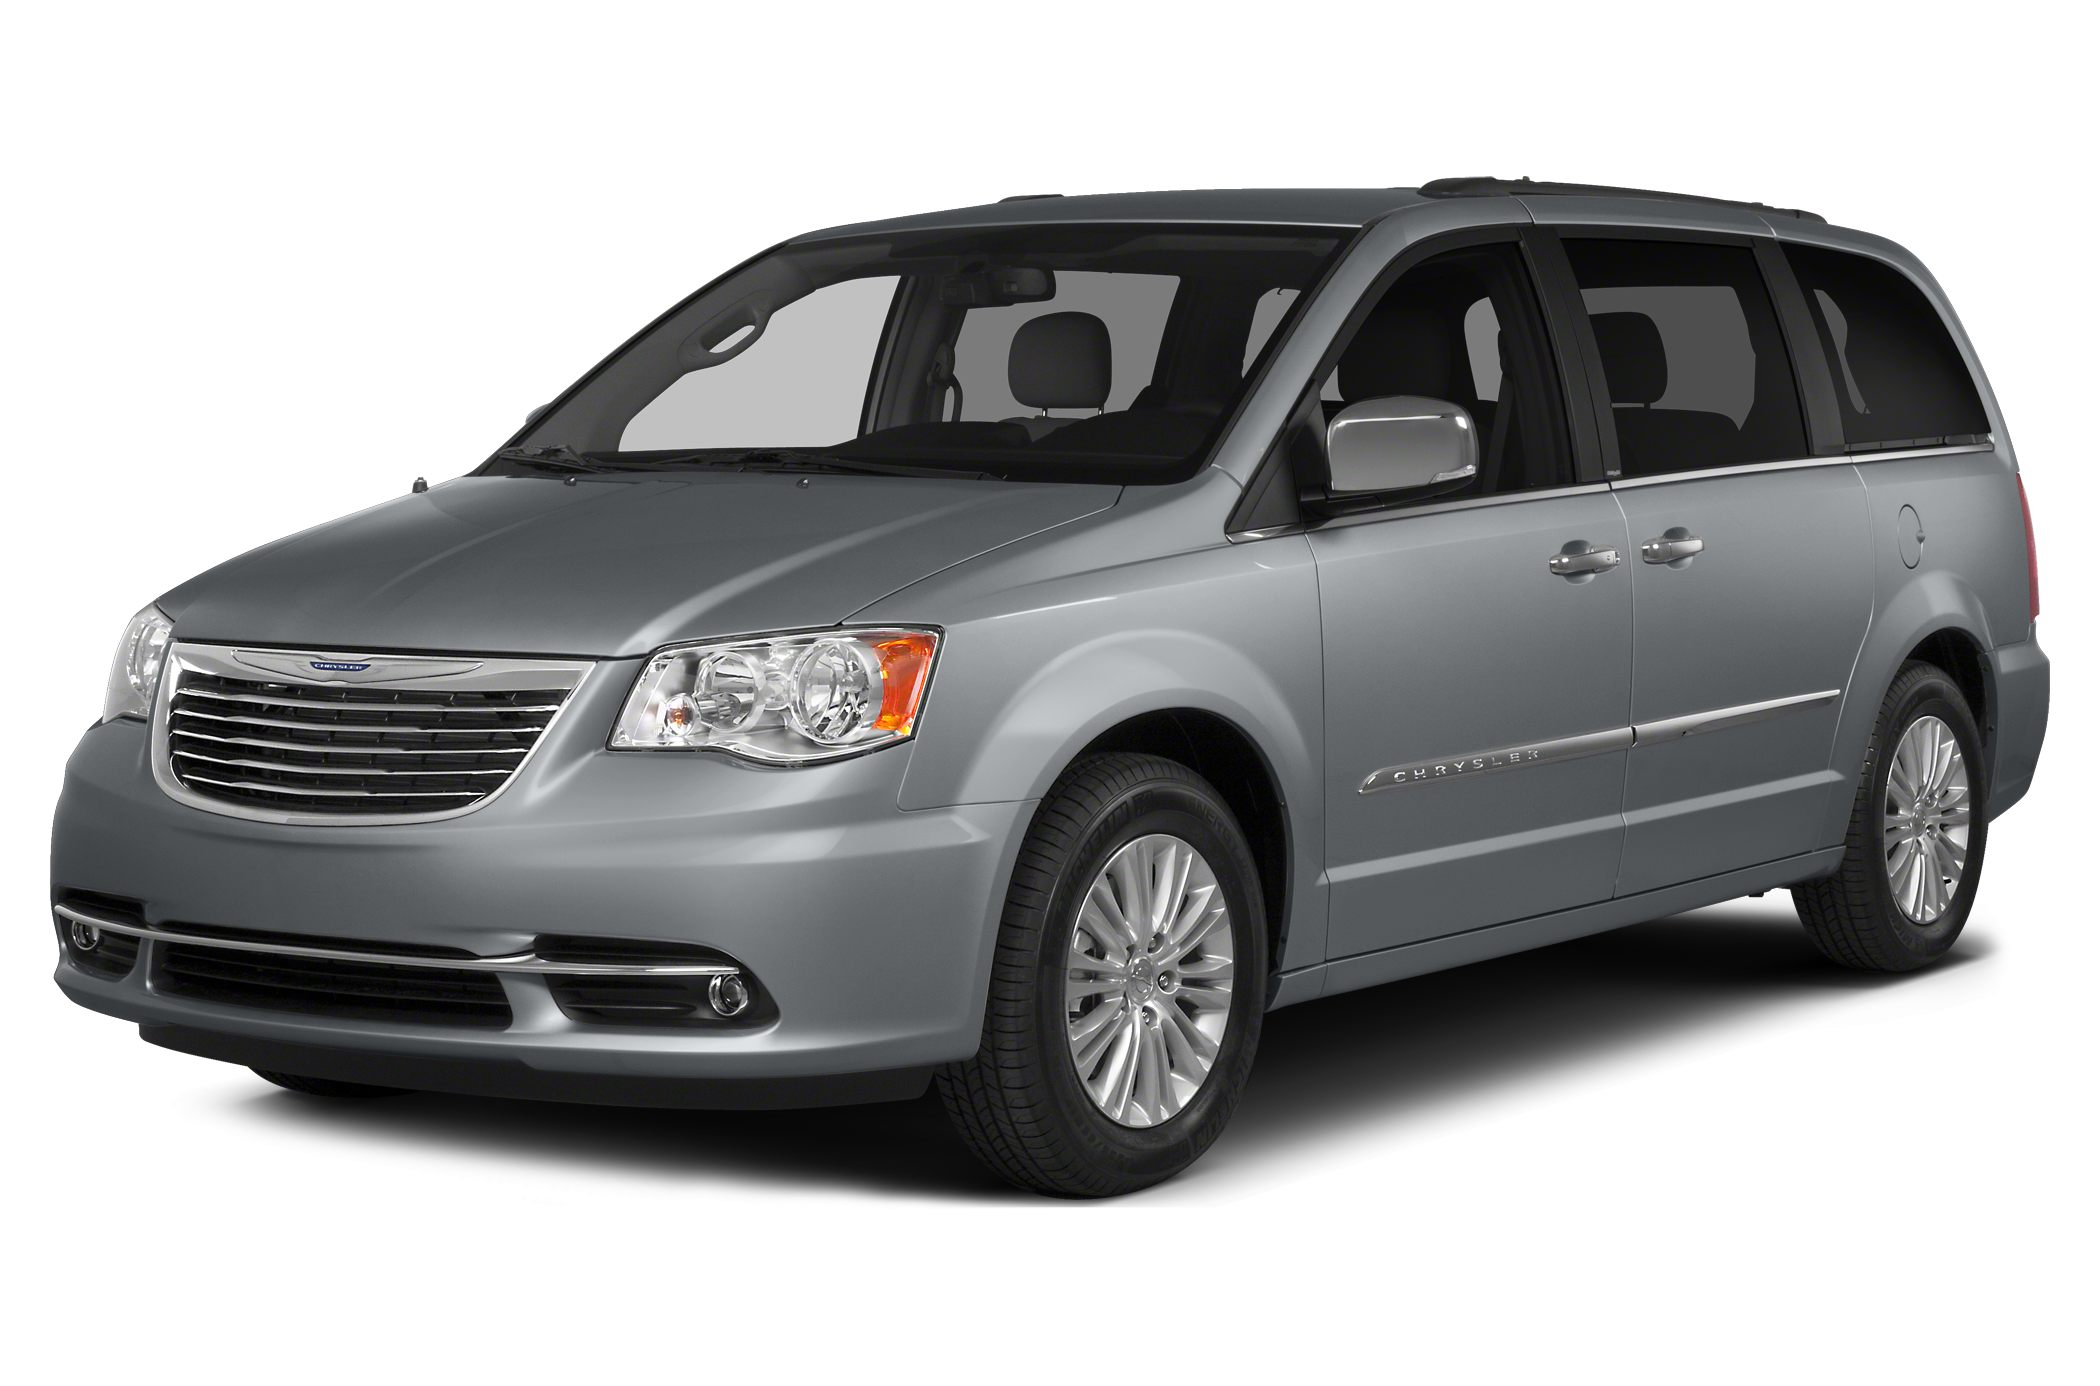 2014 Chrysler Town & Country Touring Minivan for sale in Reading for $21,588 with 28,197 miles.